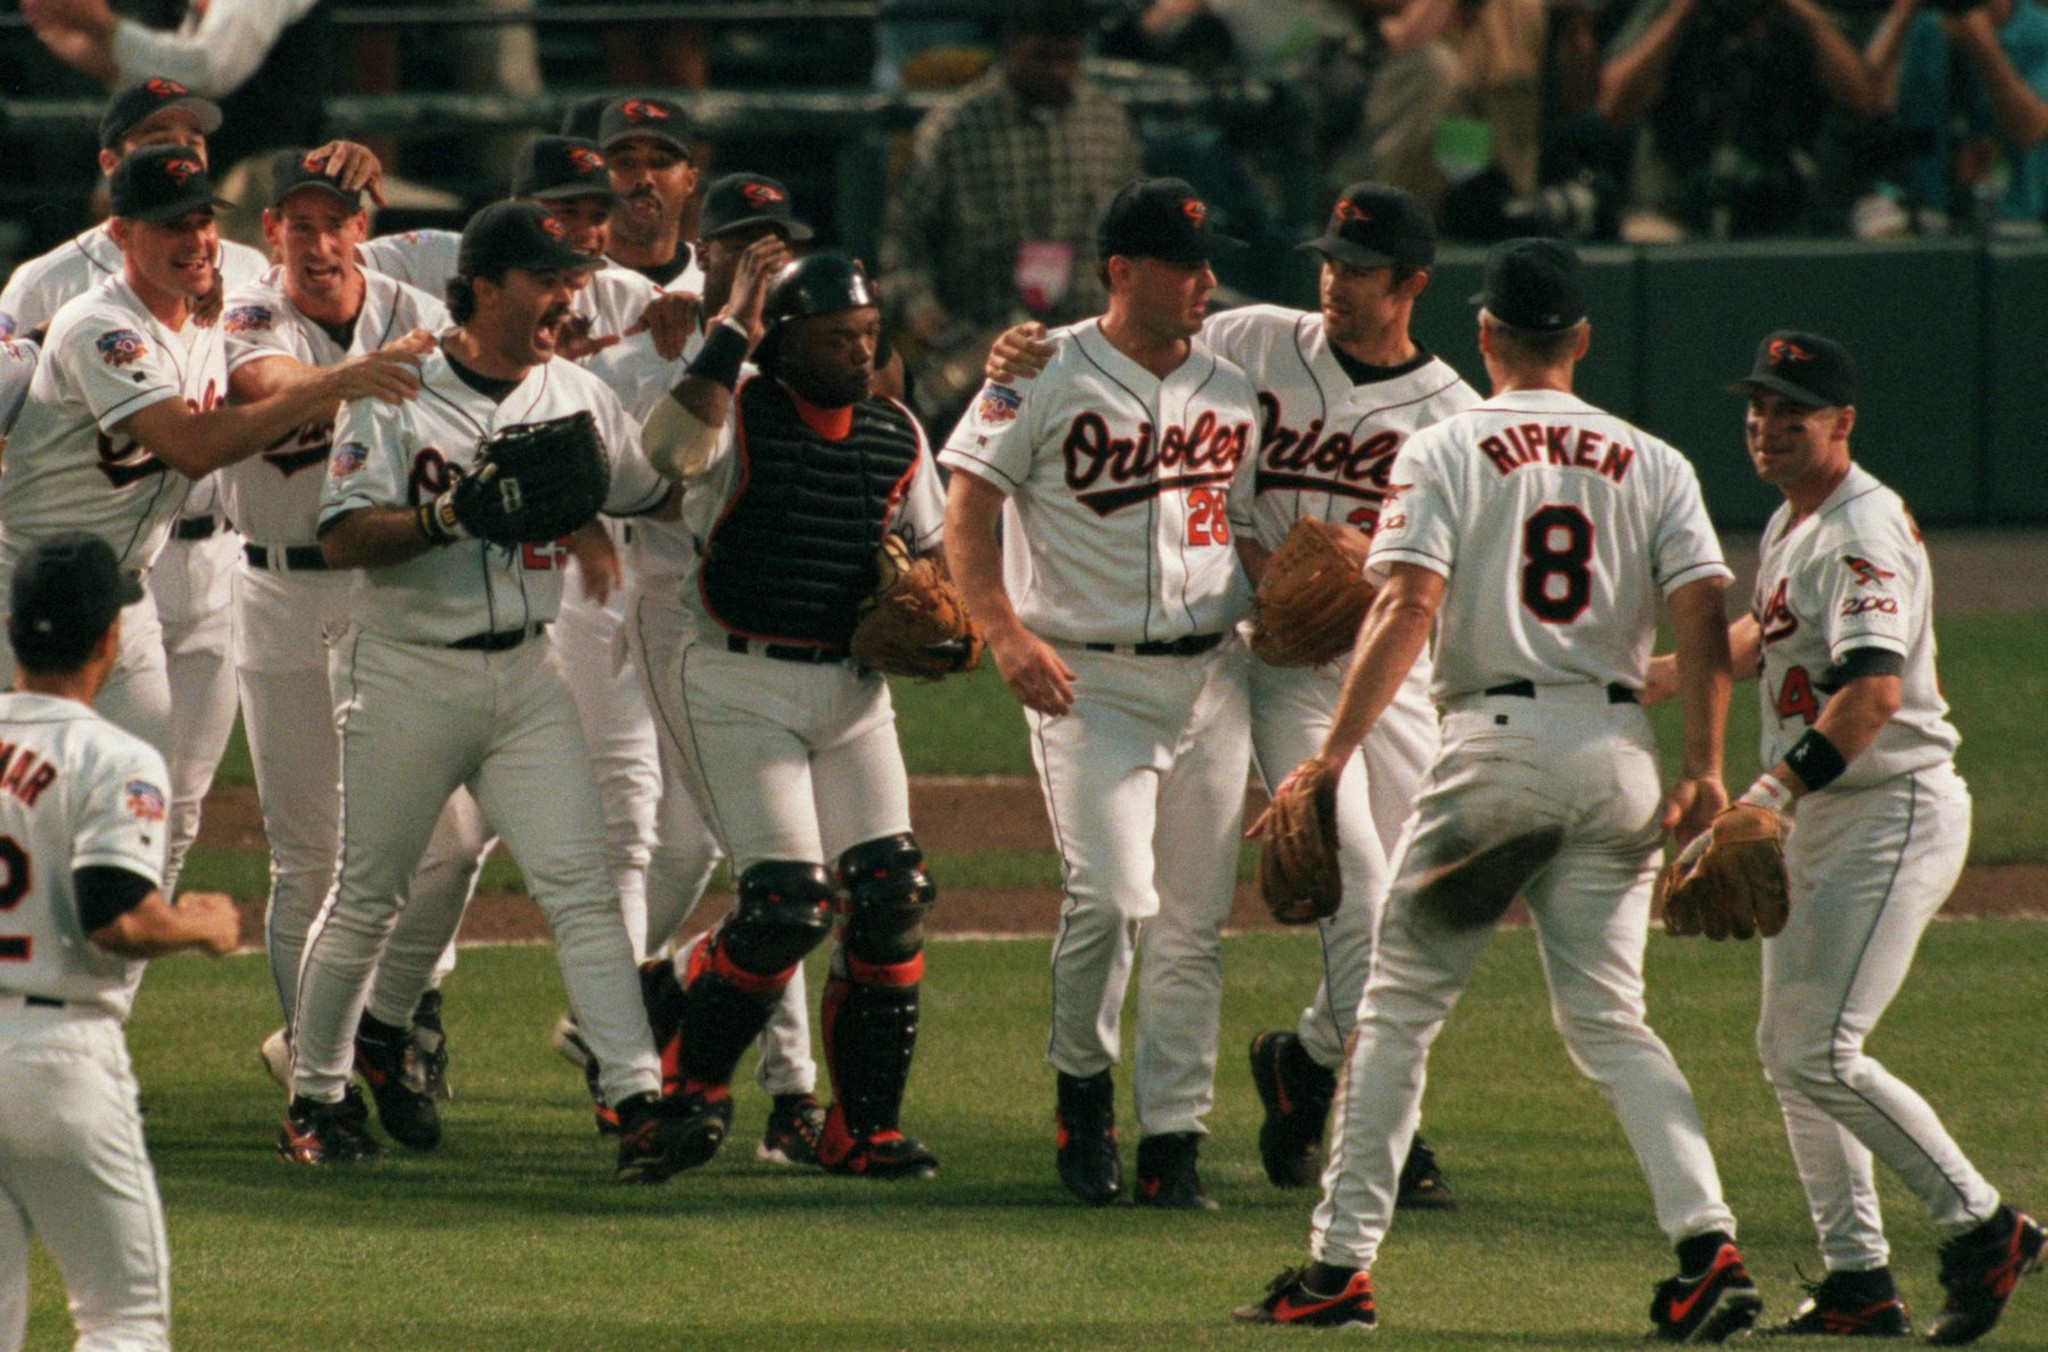 Bs-sp-orioles-special-section-1997-retrospective-20170317